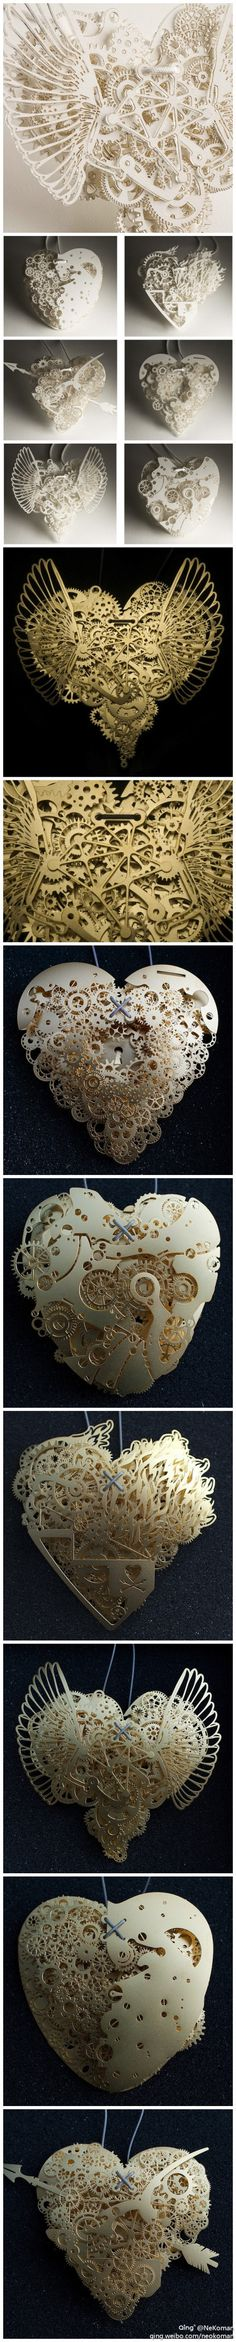 Tutorial origami, the art of ... mechanical heart, paper sculpture art! Steampunk. sarah- heart form